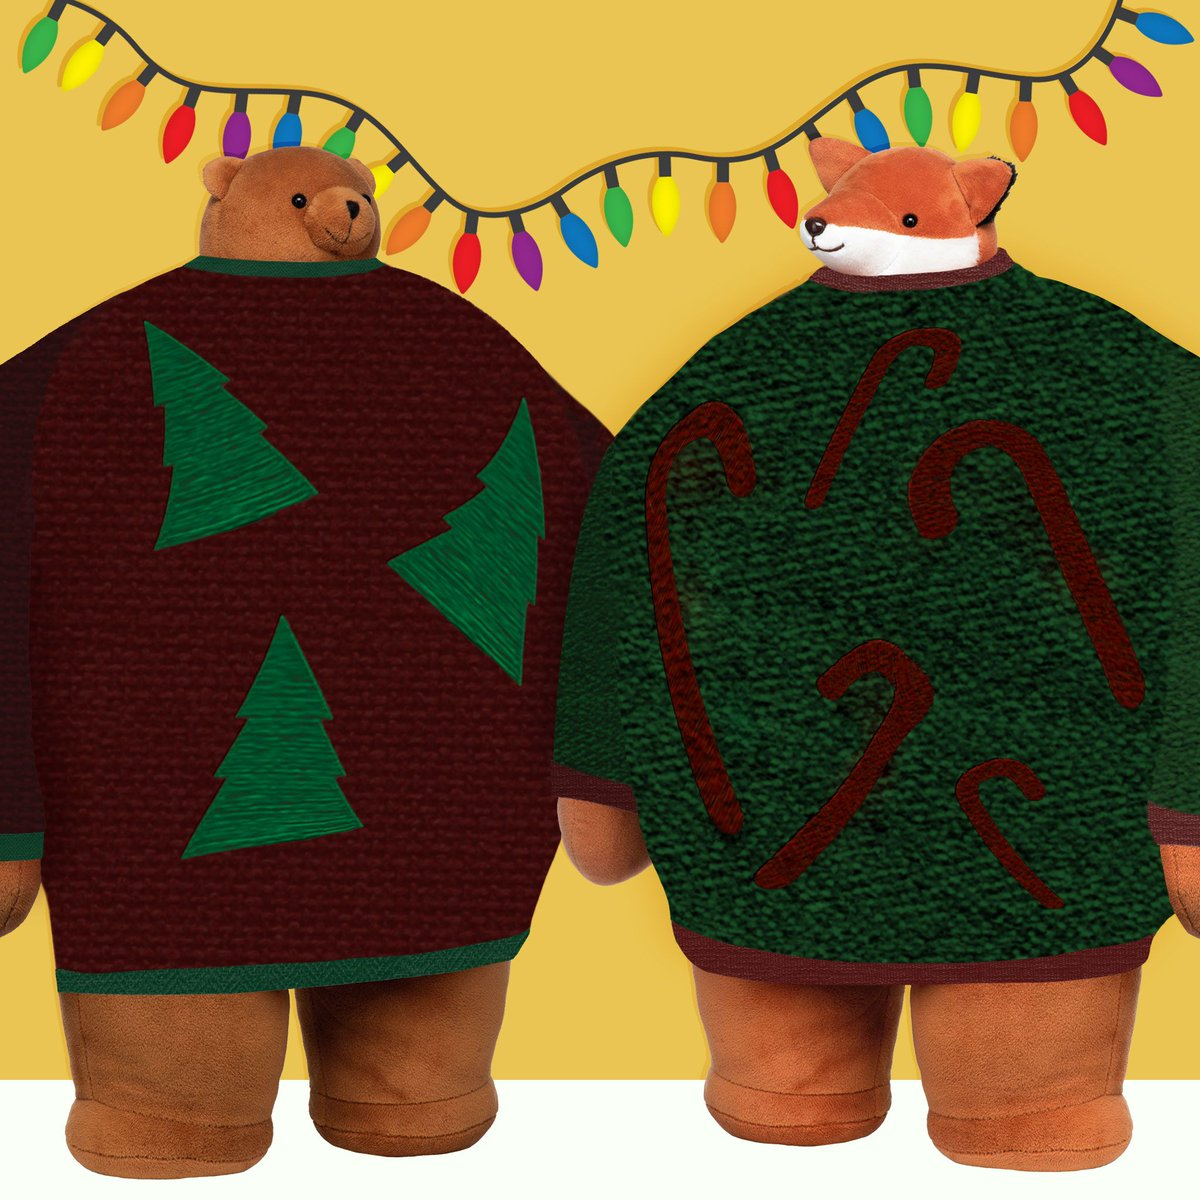 Apparently, wearing an ugly green and red colored sweater that a loved one gave you was part of this thing called holiday spirit. To Pip and Bagstock, holiday spirit felt a lot like love. #thkholiday